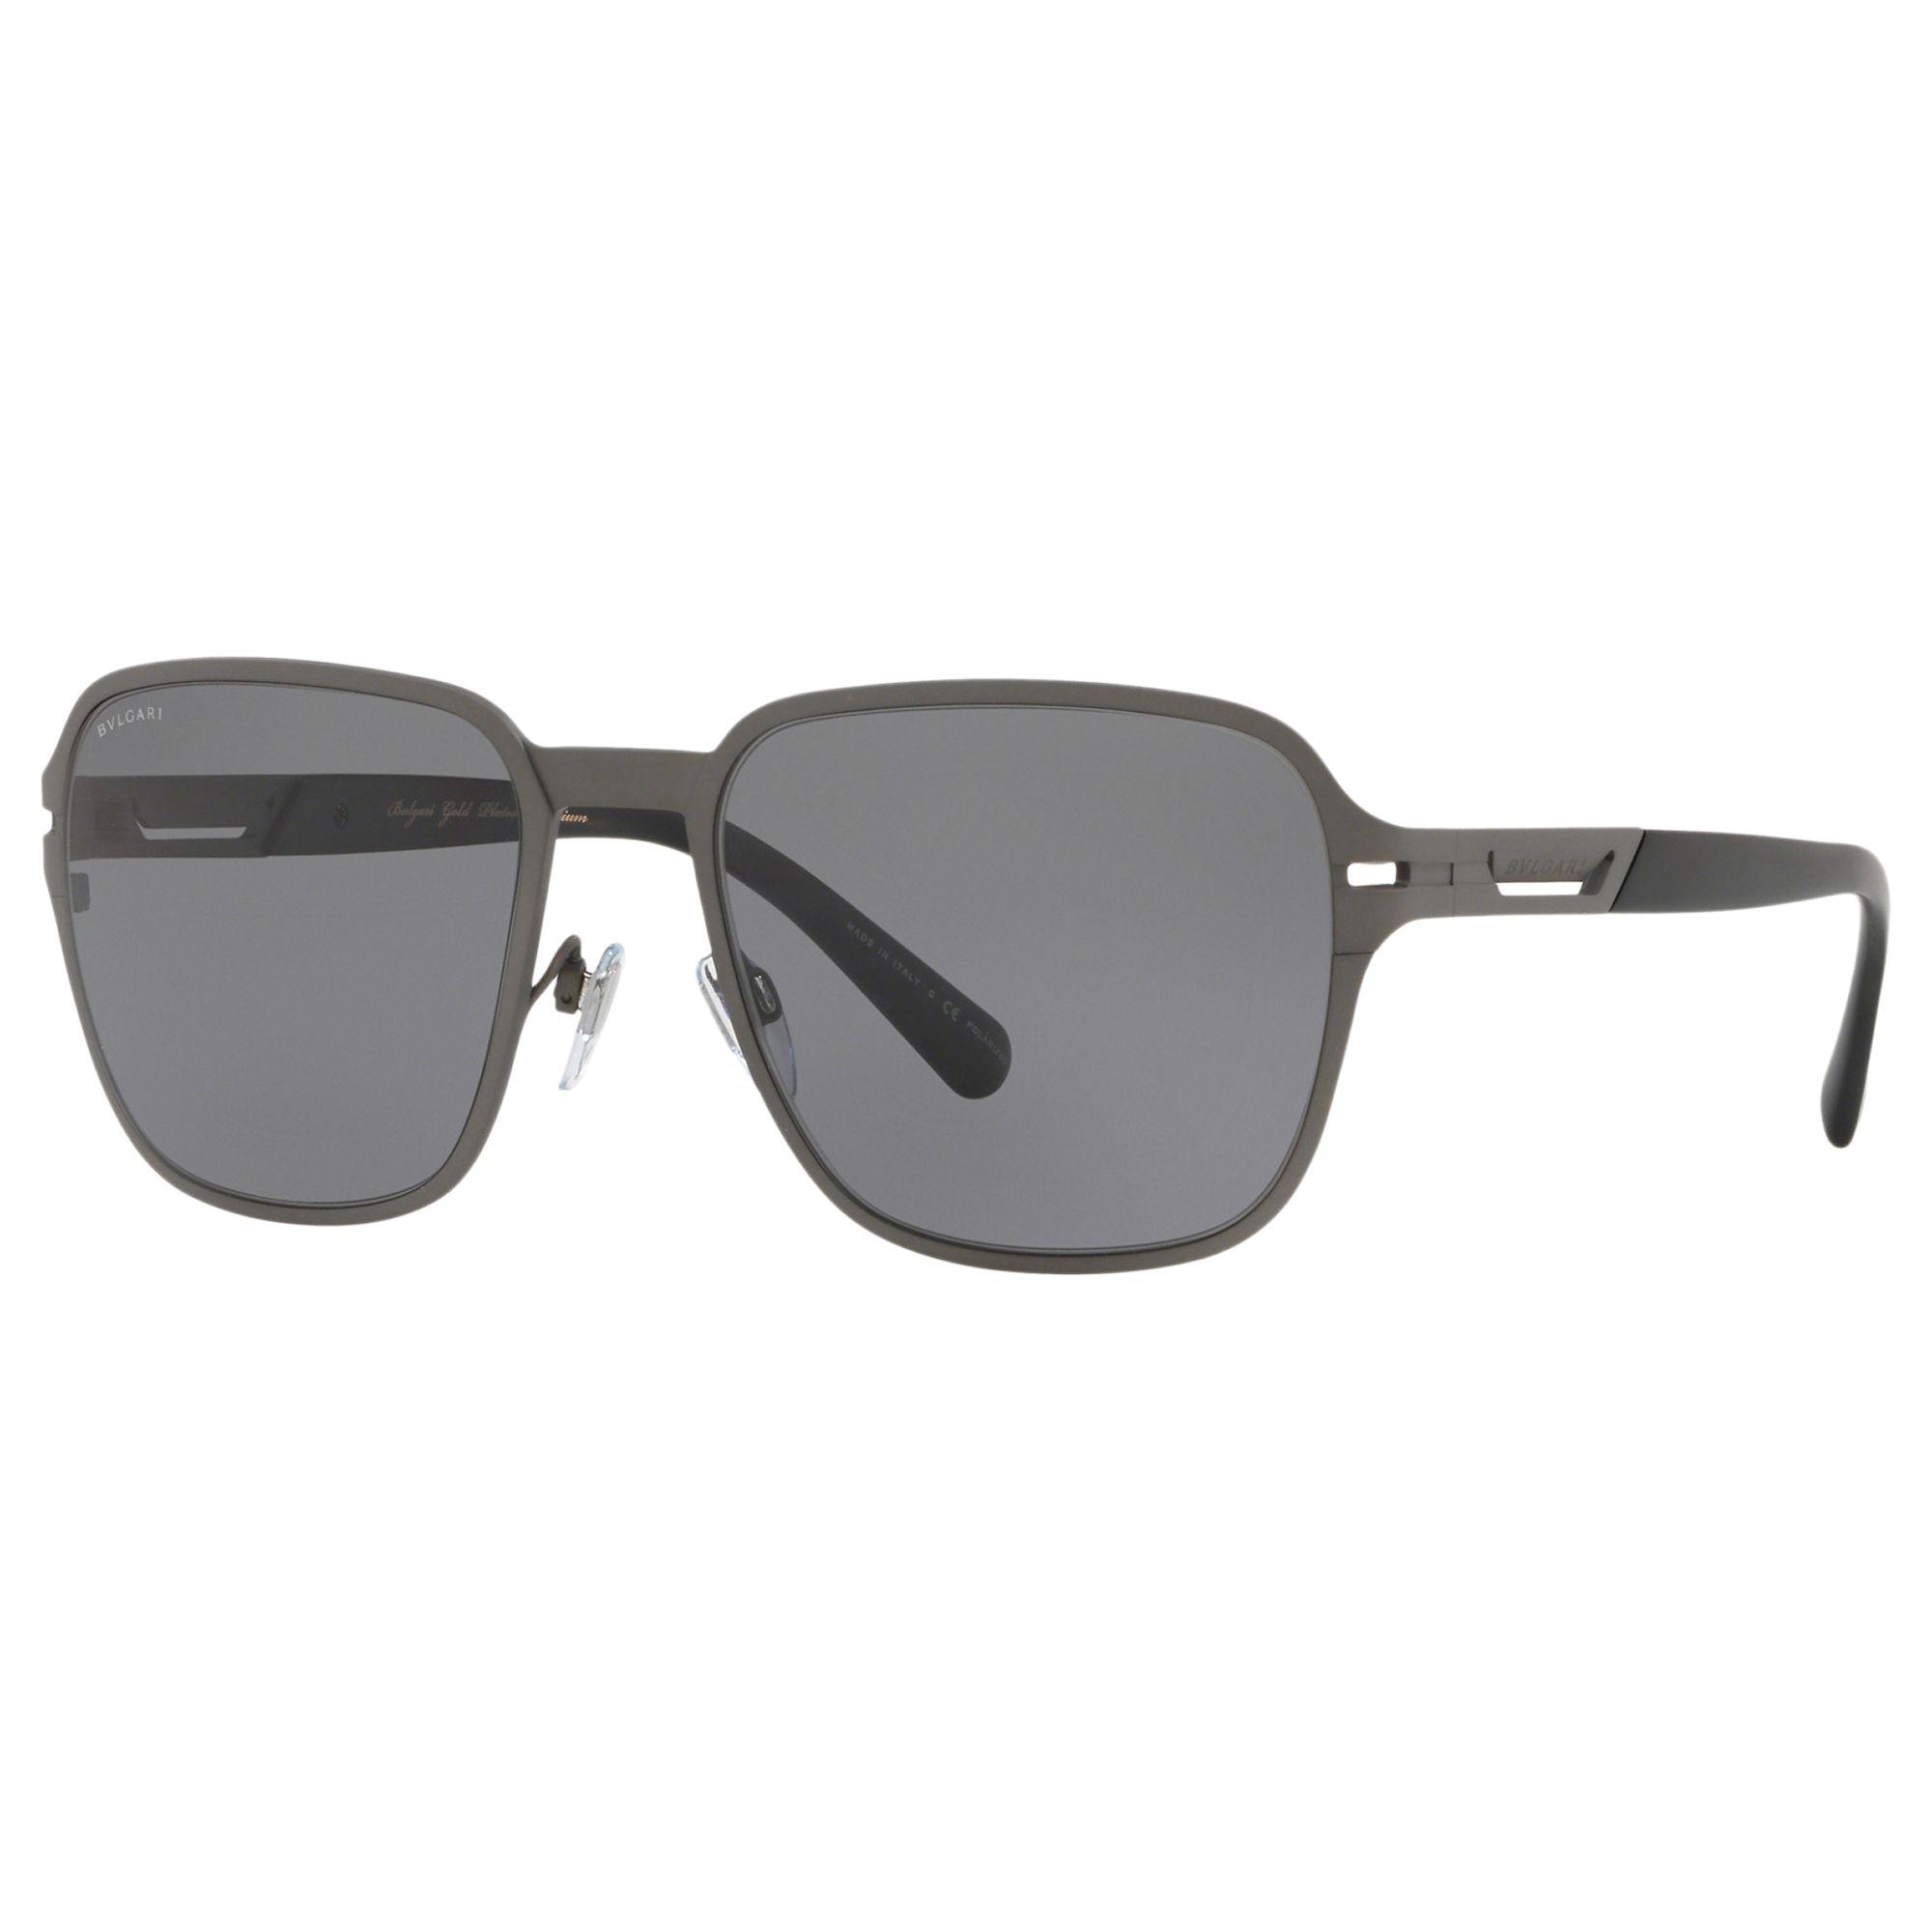 80b370012b7 BVLGARI Bv5046tk Men s Polarised Titanium Square Sunglasses in Gray ...